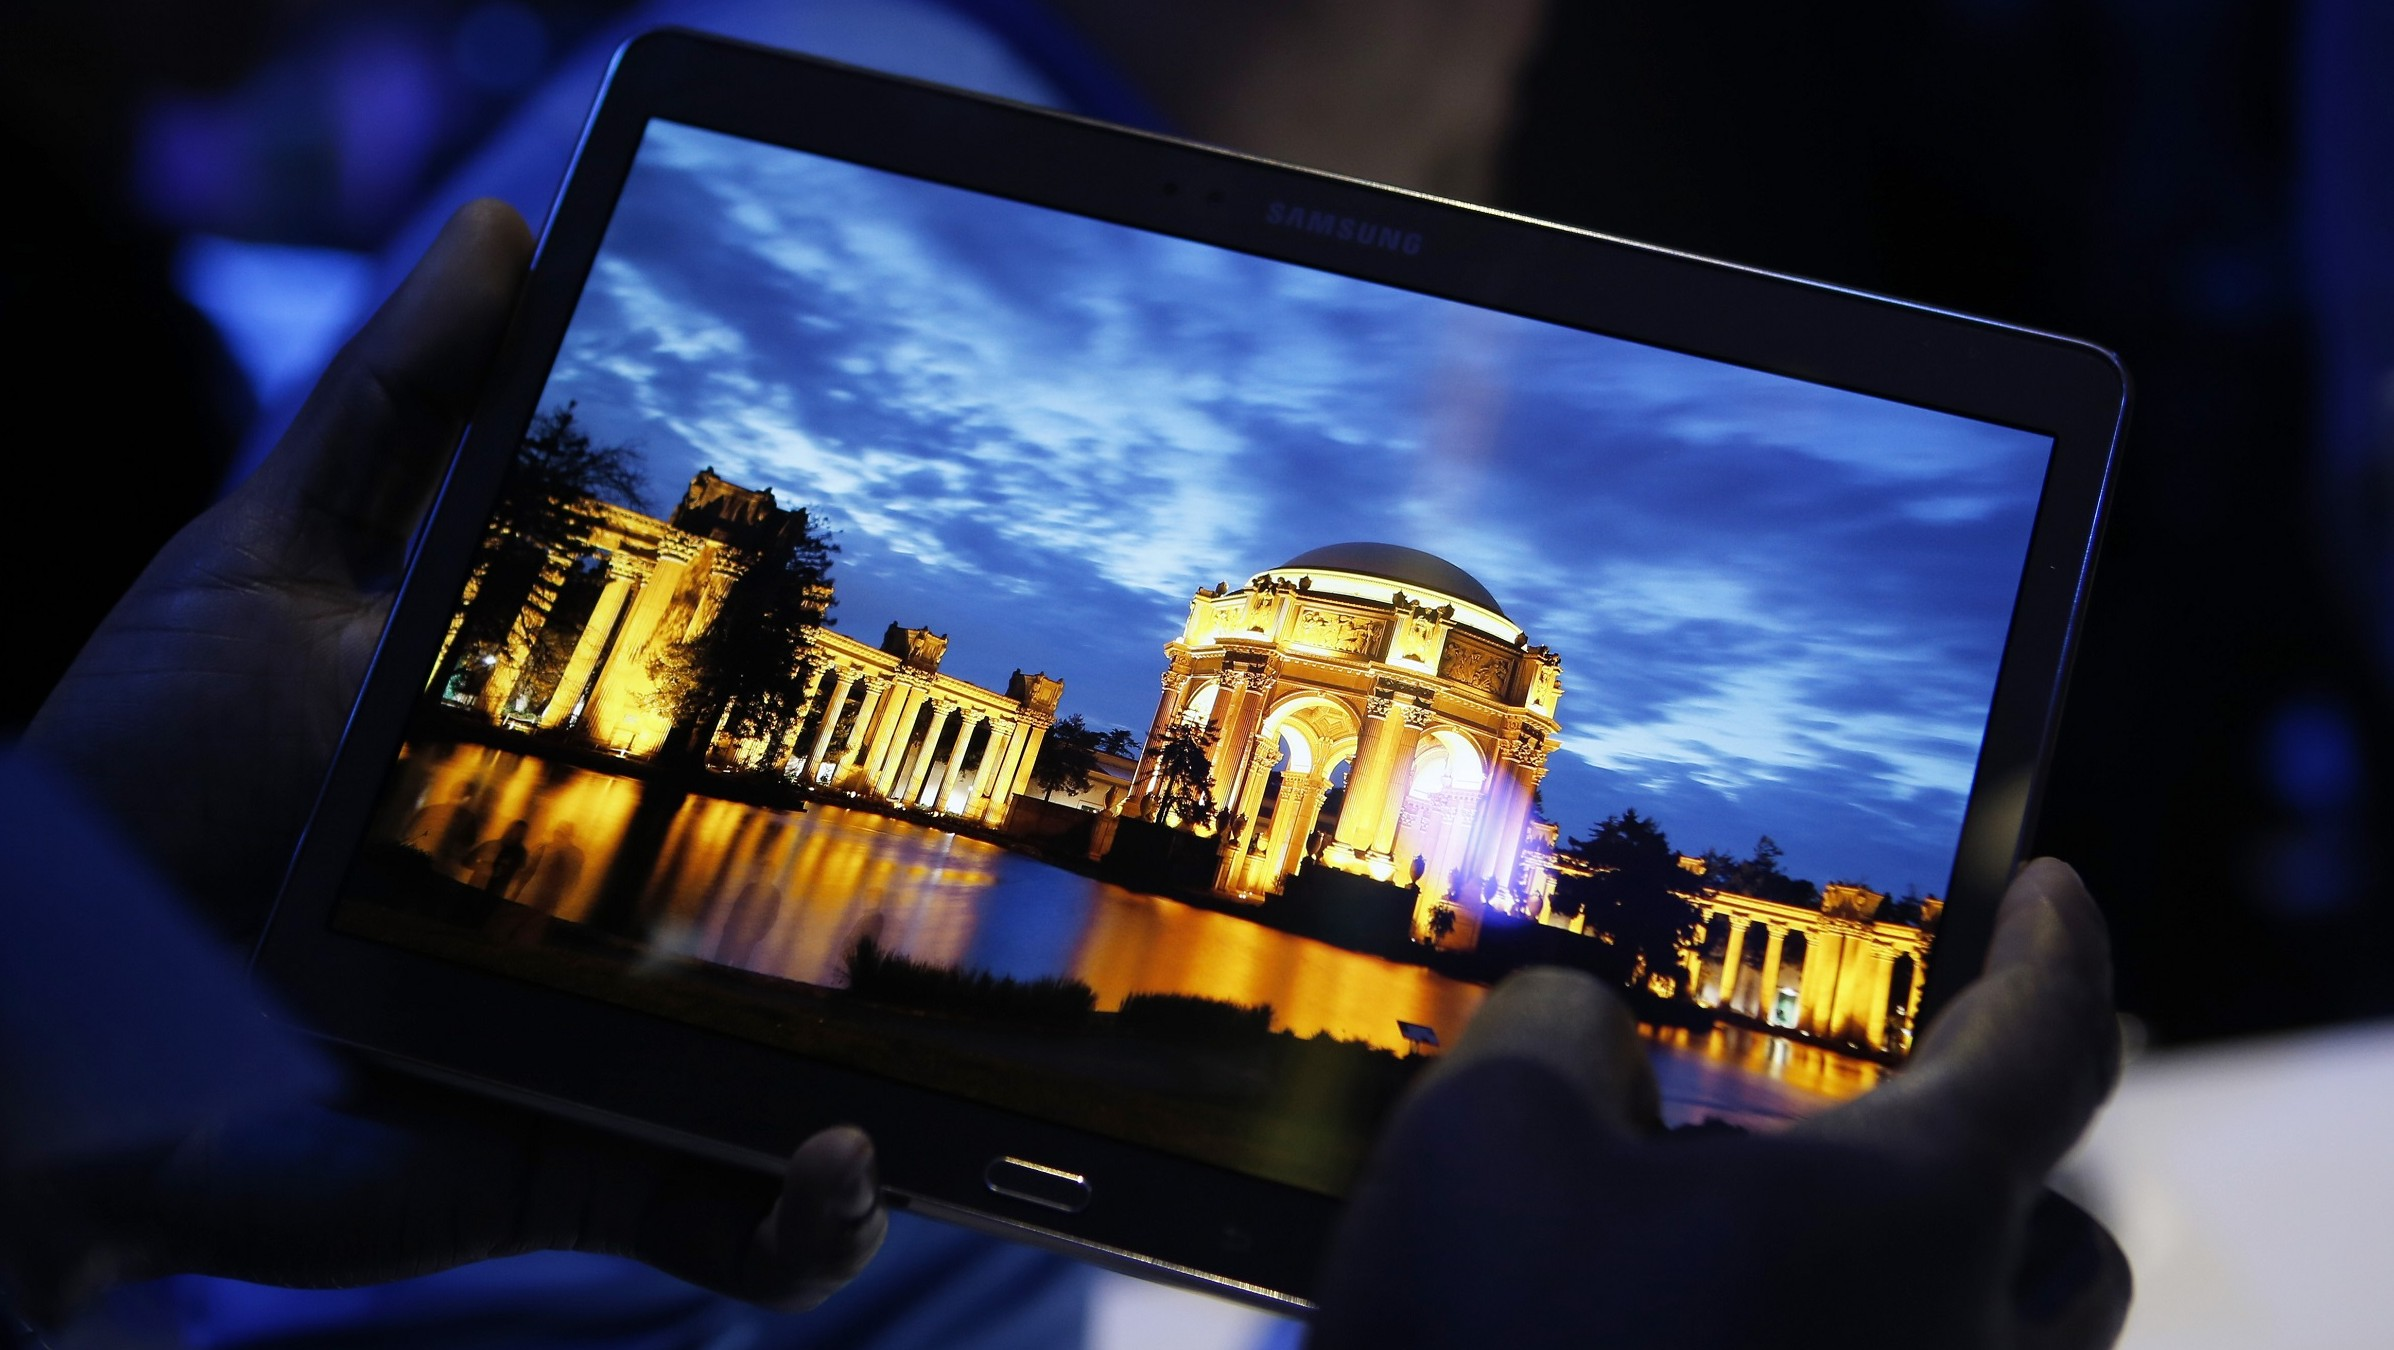 A member of the media tries out a new Samsung Galaxy Tab S after the tablet's debut at a press conference in New York, Thursday, June 12, 2014. New tablet computers from Samsung will feature screens that are richer in color than standard LCDs. (AP Photo/Kathy Willens)